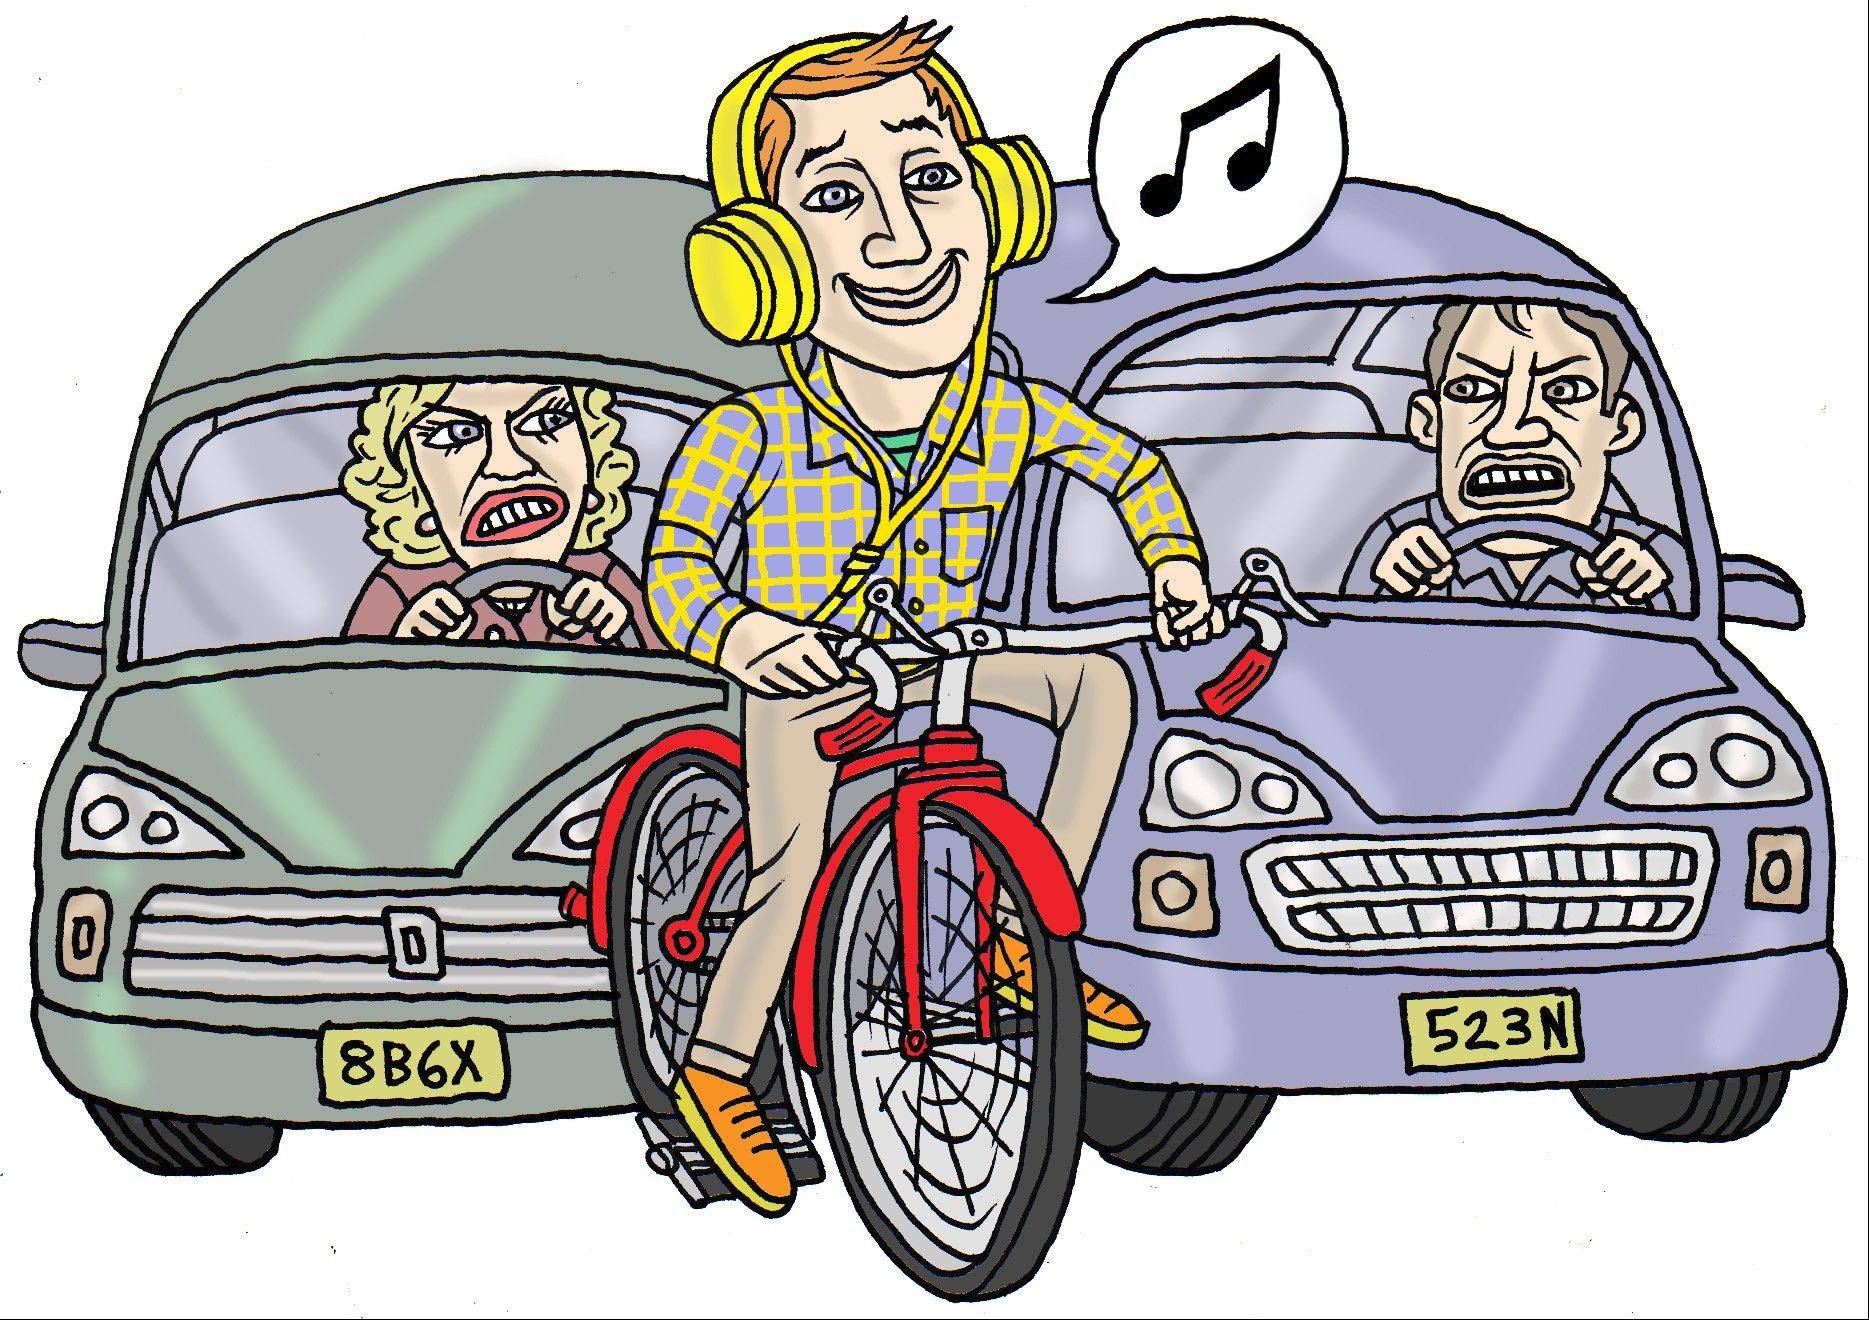 Cyclists, if you're wearing headphones, you're asking for trouble.